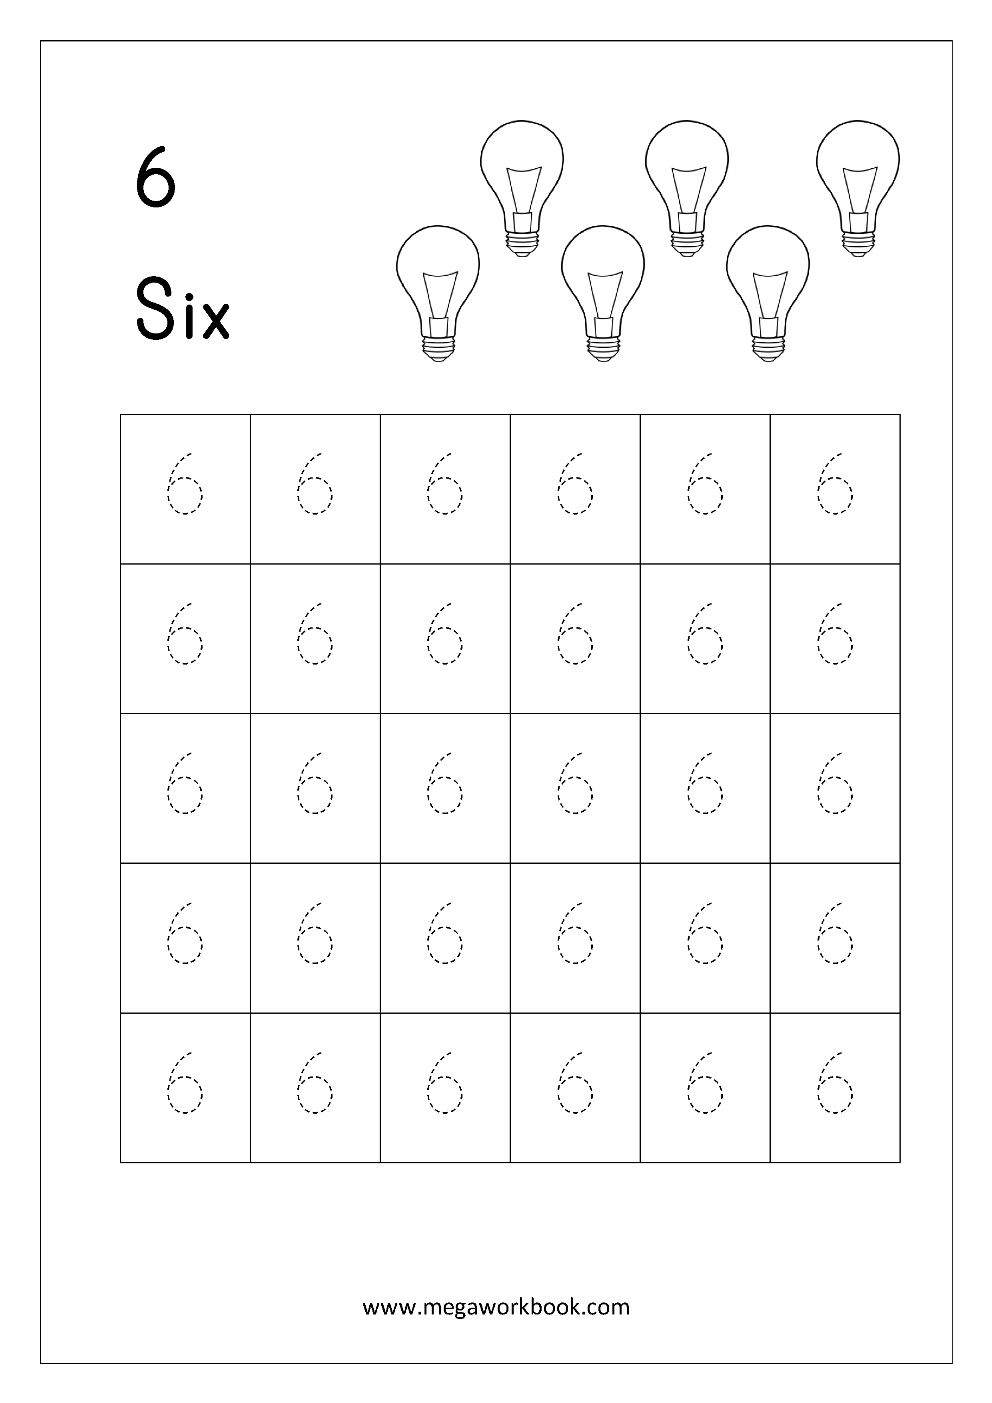 Free Printable Number Tracing And Writing 1 10 Worksheets Number Recogni Kindergarten Math Worksheets Free Kindergarten Math Numbers Kindergarten Math Free [ 1403 x 992 Pixel ]